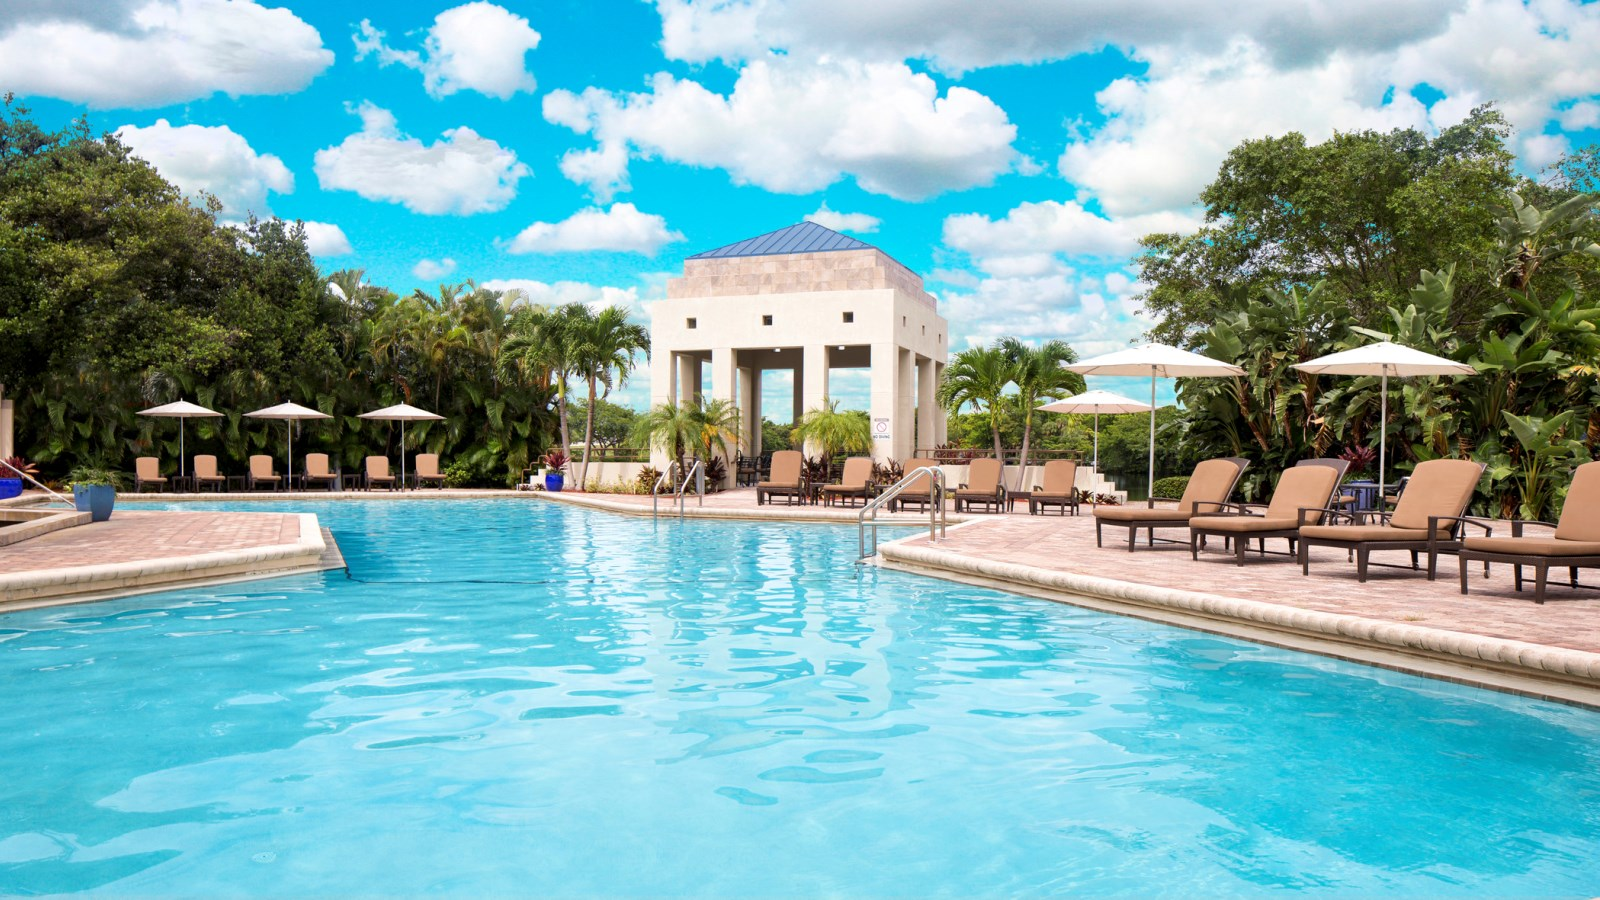 WestinWORKOUT® Pool at The Westin Fort Lauderdale Hotel